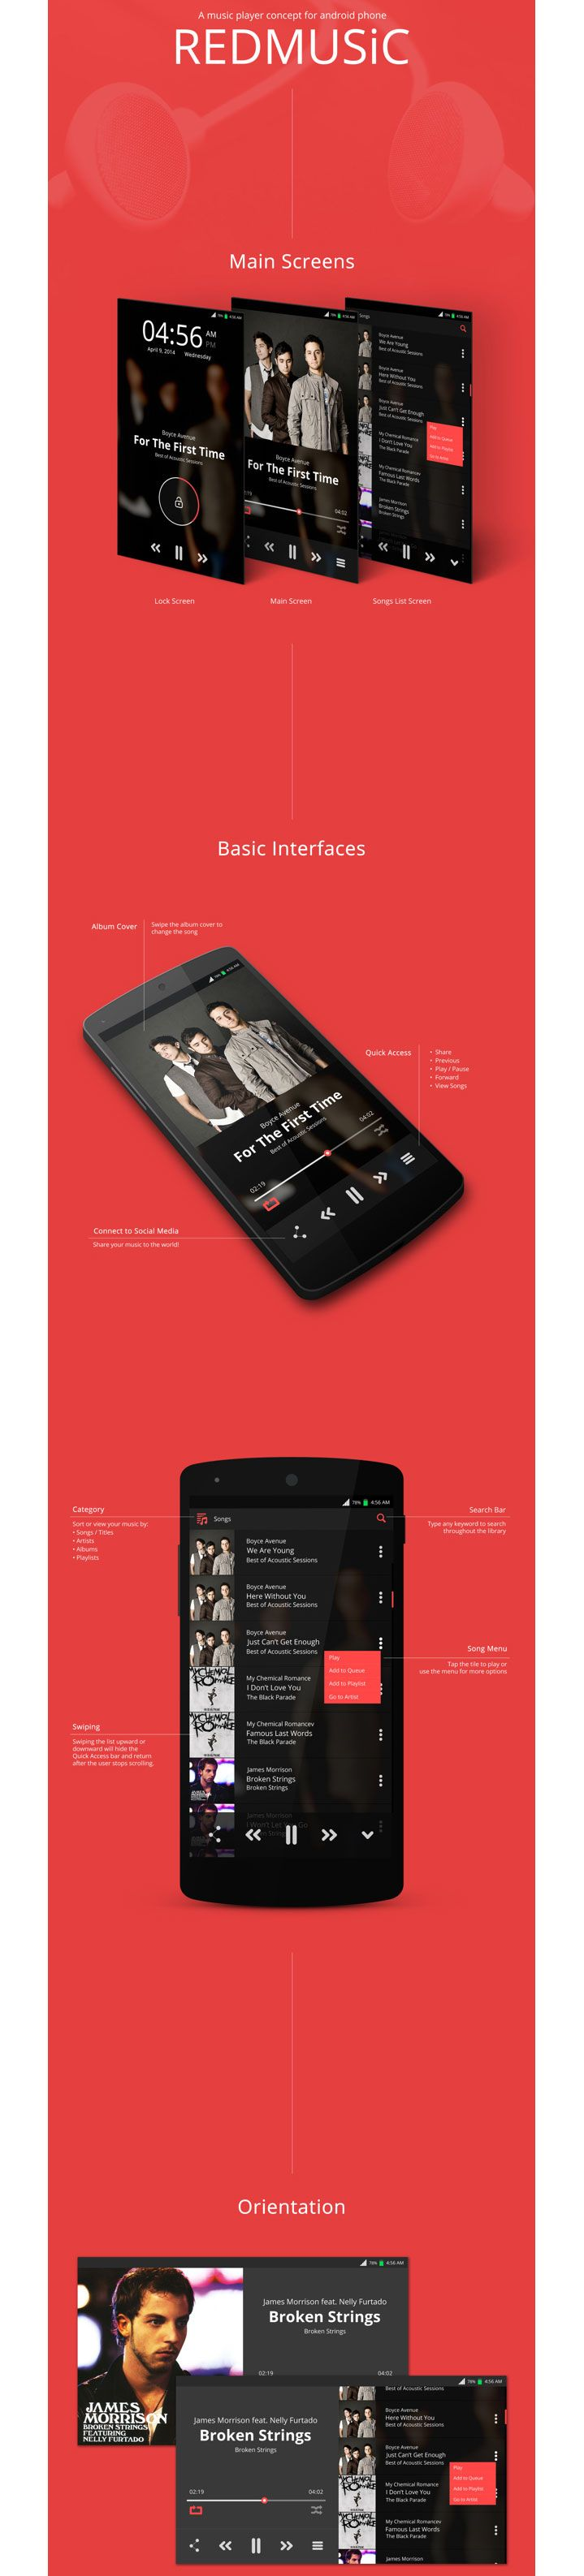 Music Player Concept for Android Phone